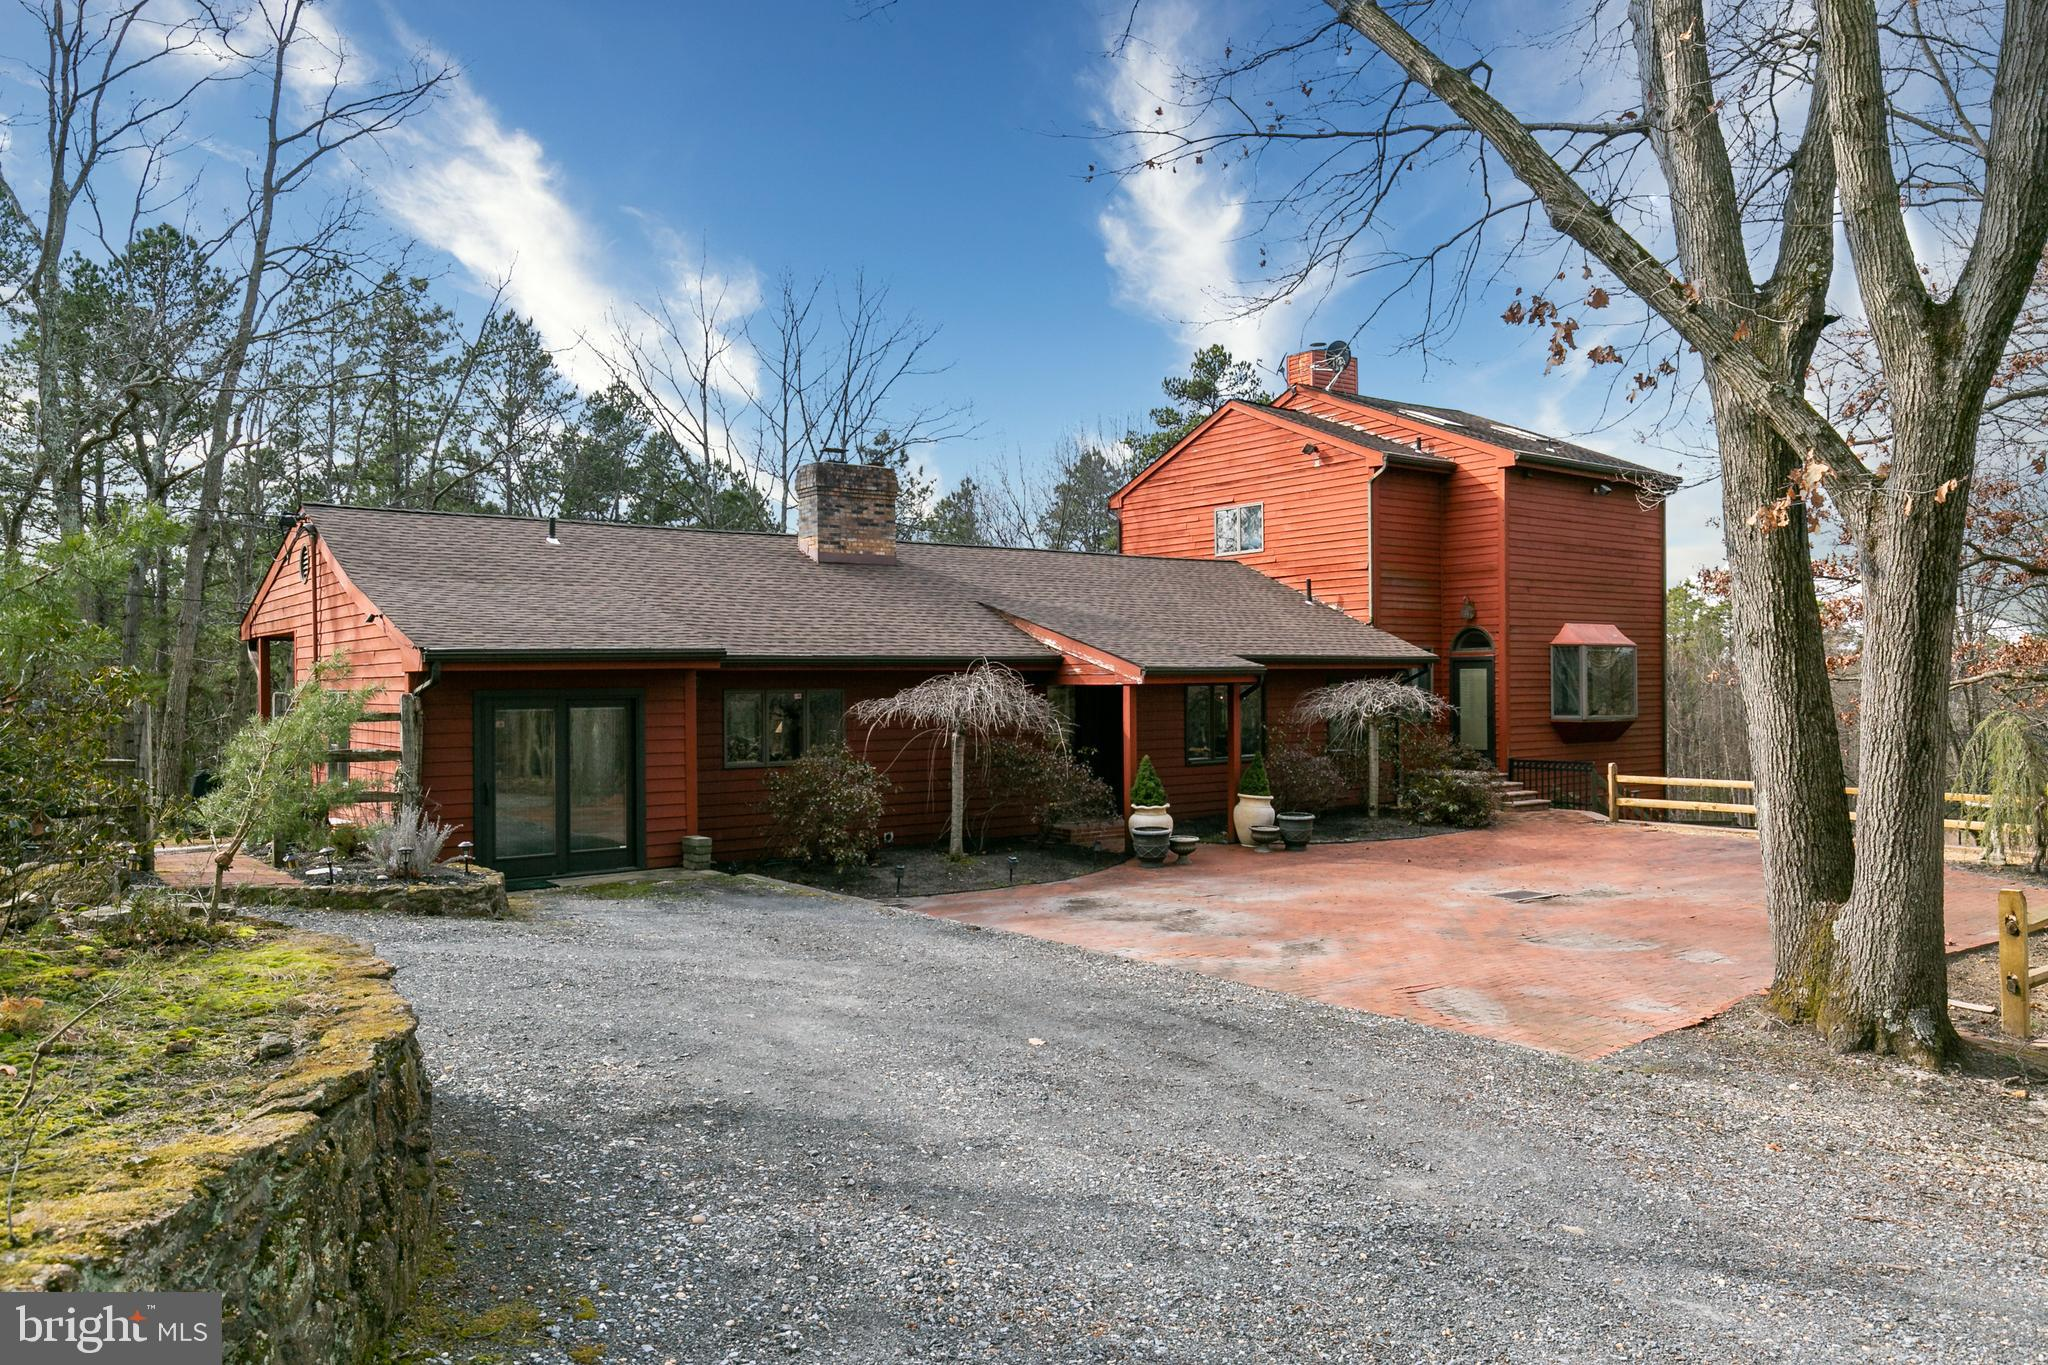 This is your opportunity to own one of the most unique properties in Camden County. Nestled within 14+ acres of complete serenity is this contemporary style home with a view. This 4,000 square foot home has been meticulously maintained and has so much potential for the new owner. Currently the property offers the space to subdivide, making this a builders dream! Or if not looking to subdivide, but instead a buyer who enjoys the outdoors and complete privacy, this is a home for you. You will find hardwood floors throughout majority of the home, including the bedrooms.  With 4/5 bedrooms and 4 bathrooms, you have plenty of space at the current home, but can take advantage of the vast amount of land to extend on the existing if desired. The custom kitchen has tile flooring and counters,  butcher block counter space, sub zero refrigerator and restaurant quality cooking appliances. This is a dream for anyone who enjoys being in the kitchen! And the living space has ample natural lighting and panoramic window views. In the master suite, which is complete with a large updated master bath, you can  really take advantage of the views. From the master bedroom deck you can enjoy a sunrise, fresh air, and a beautiful Philadelphia skyline view. And there is plenty of storage and closet space here, as well as throughout the rest of the home. And back outside boast a custom paver and brick patio, as well as the calming sounds of a small pond and waterfall.  So don't miss this rare opportunity for outdoor space, room to grow and develop, and the ease of enjoying all nature has to offer. And all of this with easy access to major highways, restaurants, shopping, and among award winning schools.